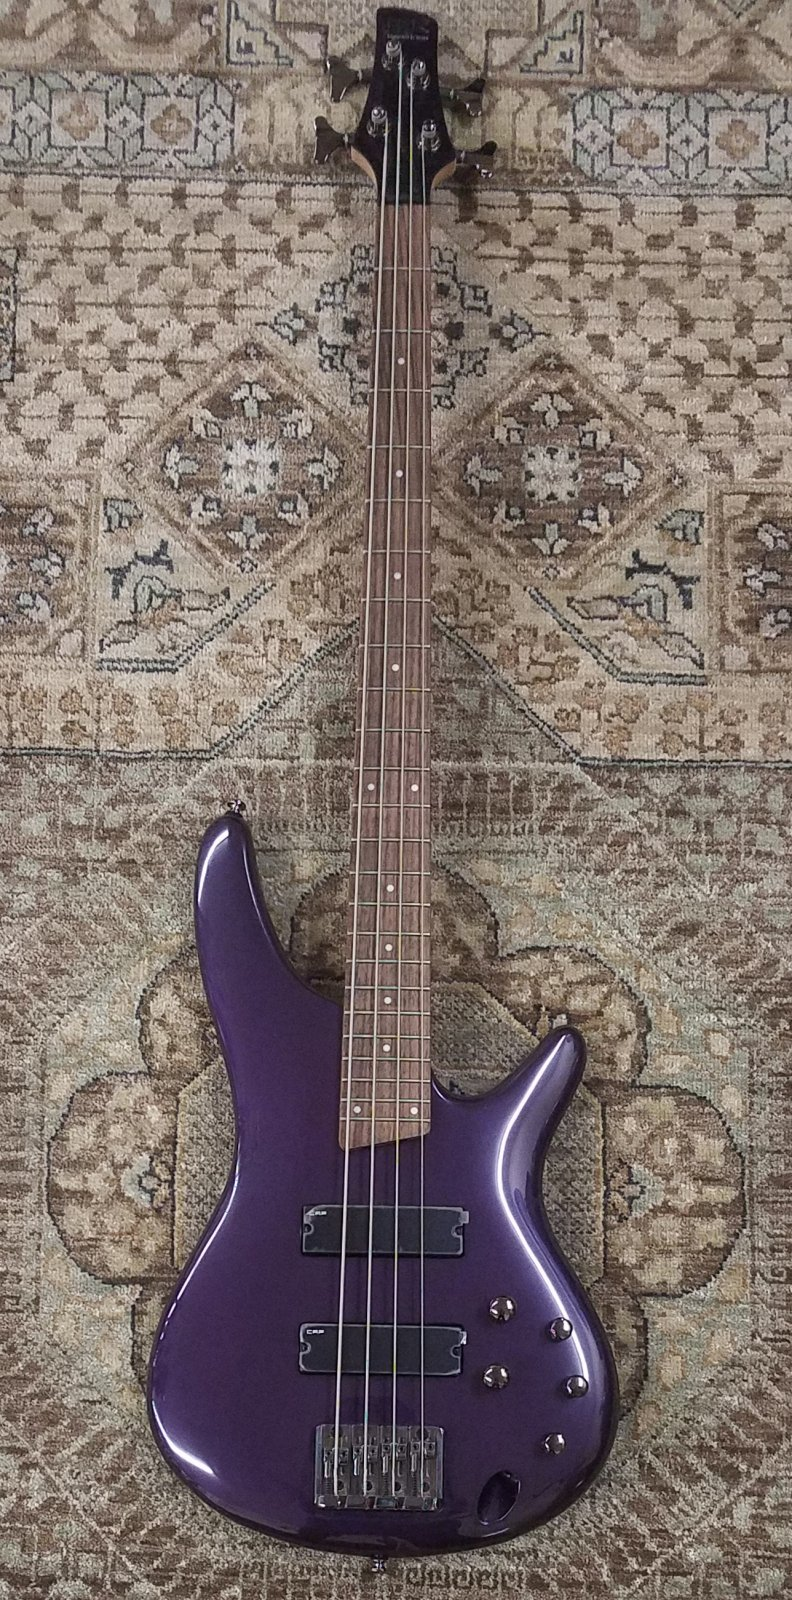 Used Ibanez SR300 Bass in Violet Metallic w/ Gig Bag & Extras